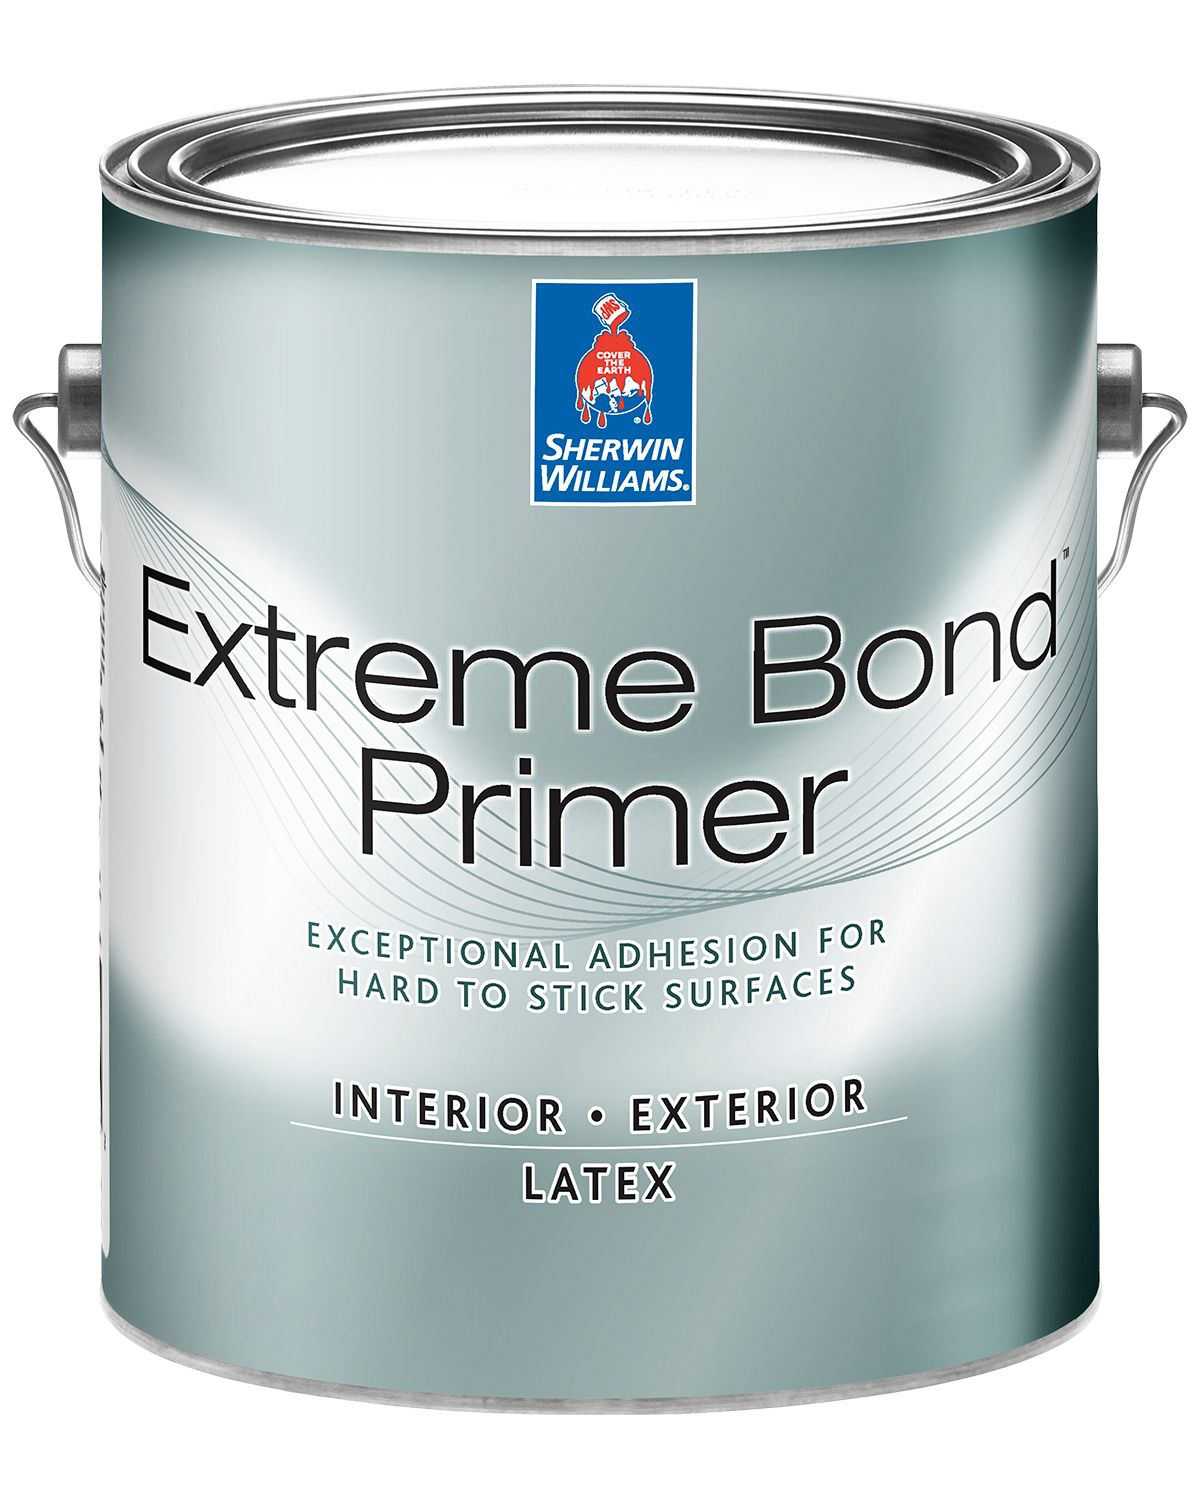 Extreme Bond Primer - Sherwin-Williams